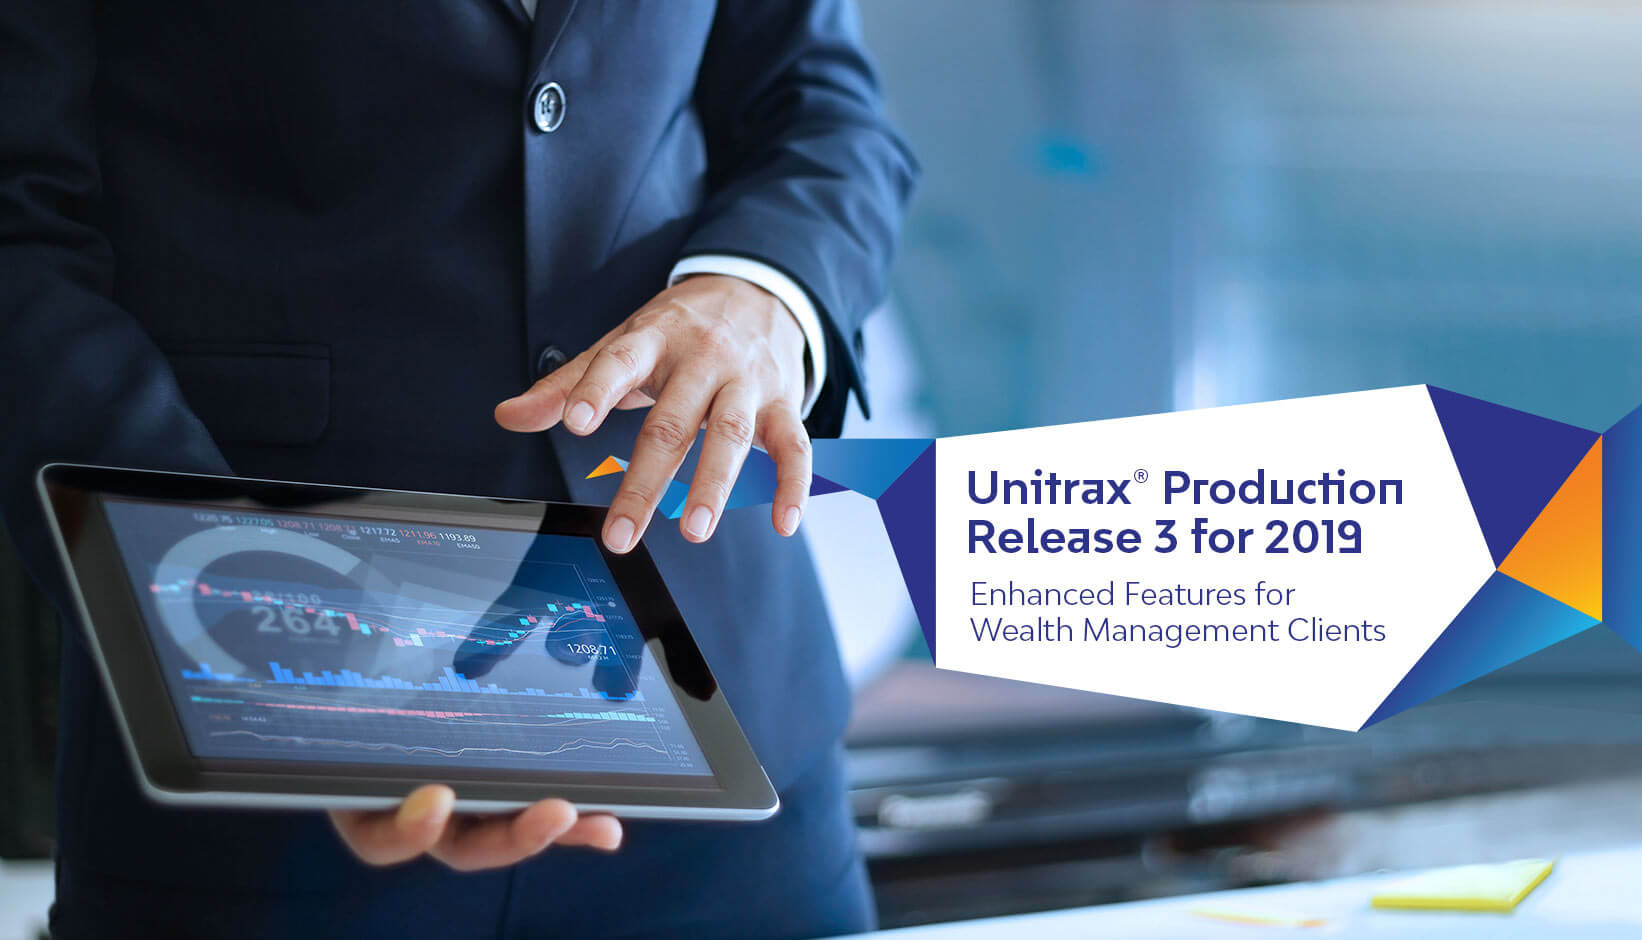 Unitrax® 3rd production release for 2019